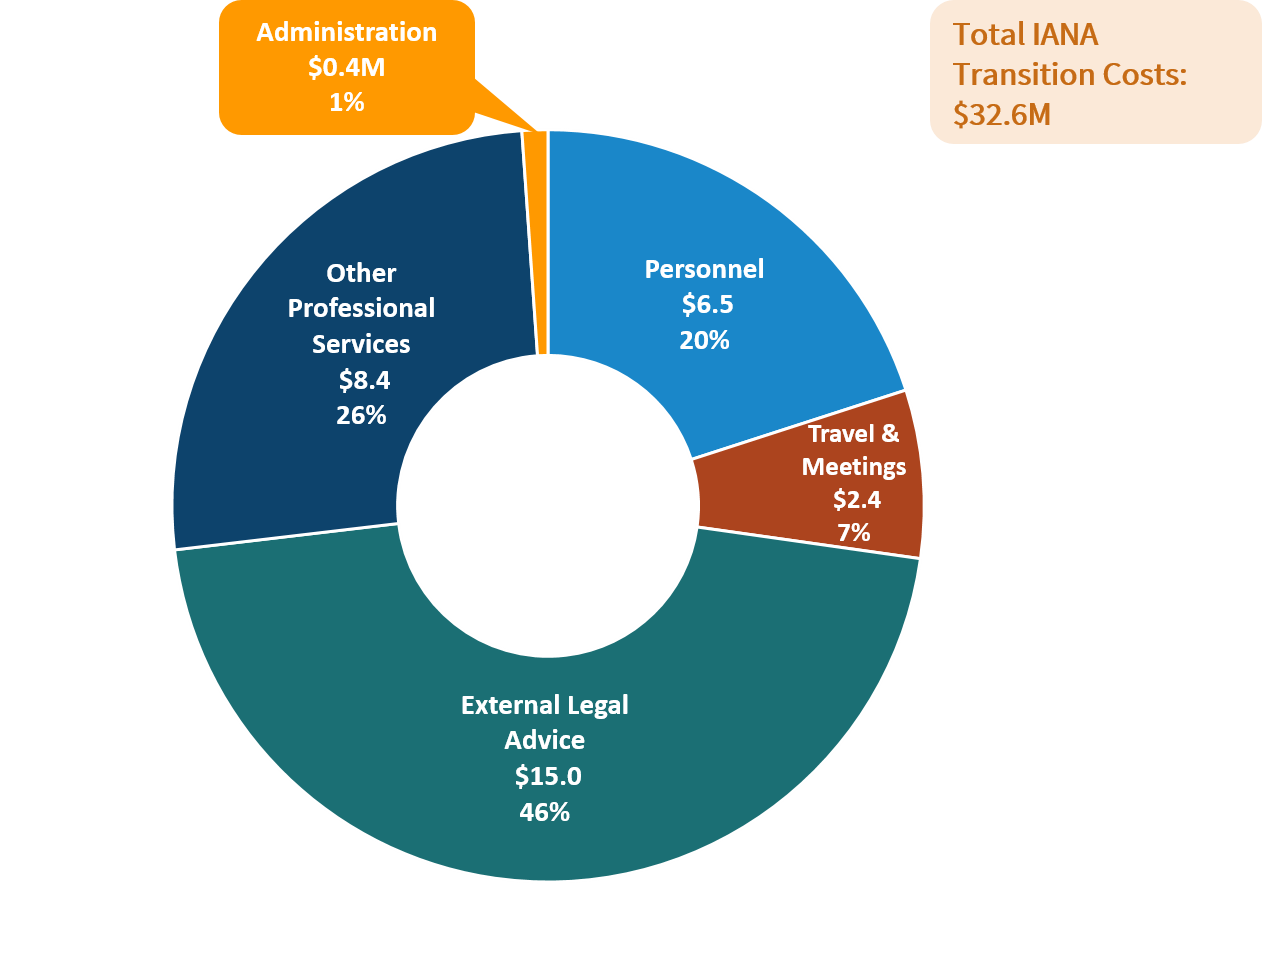 IANA Transition - Cost Summary